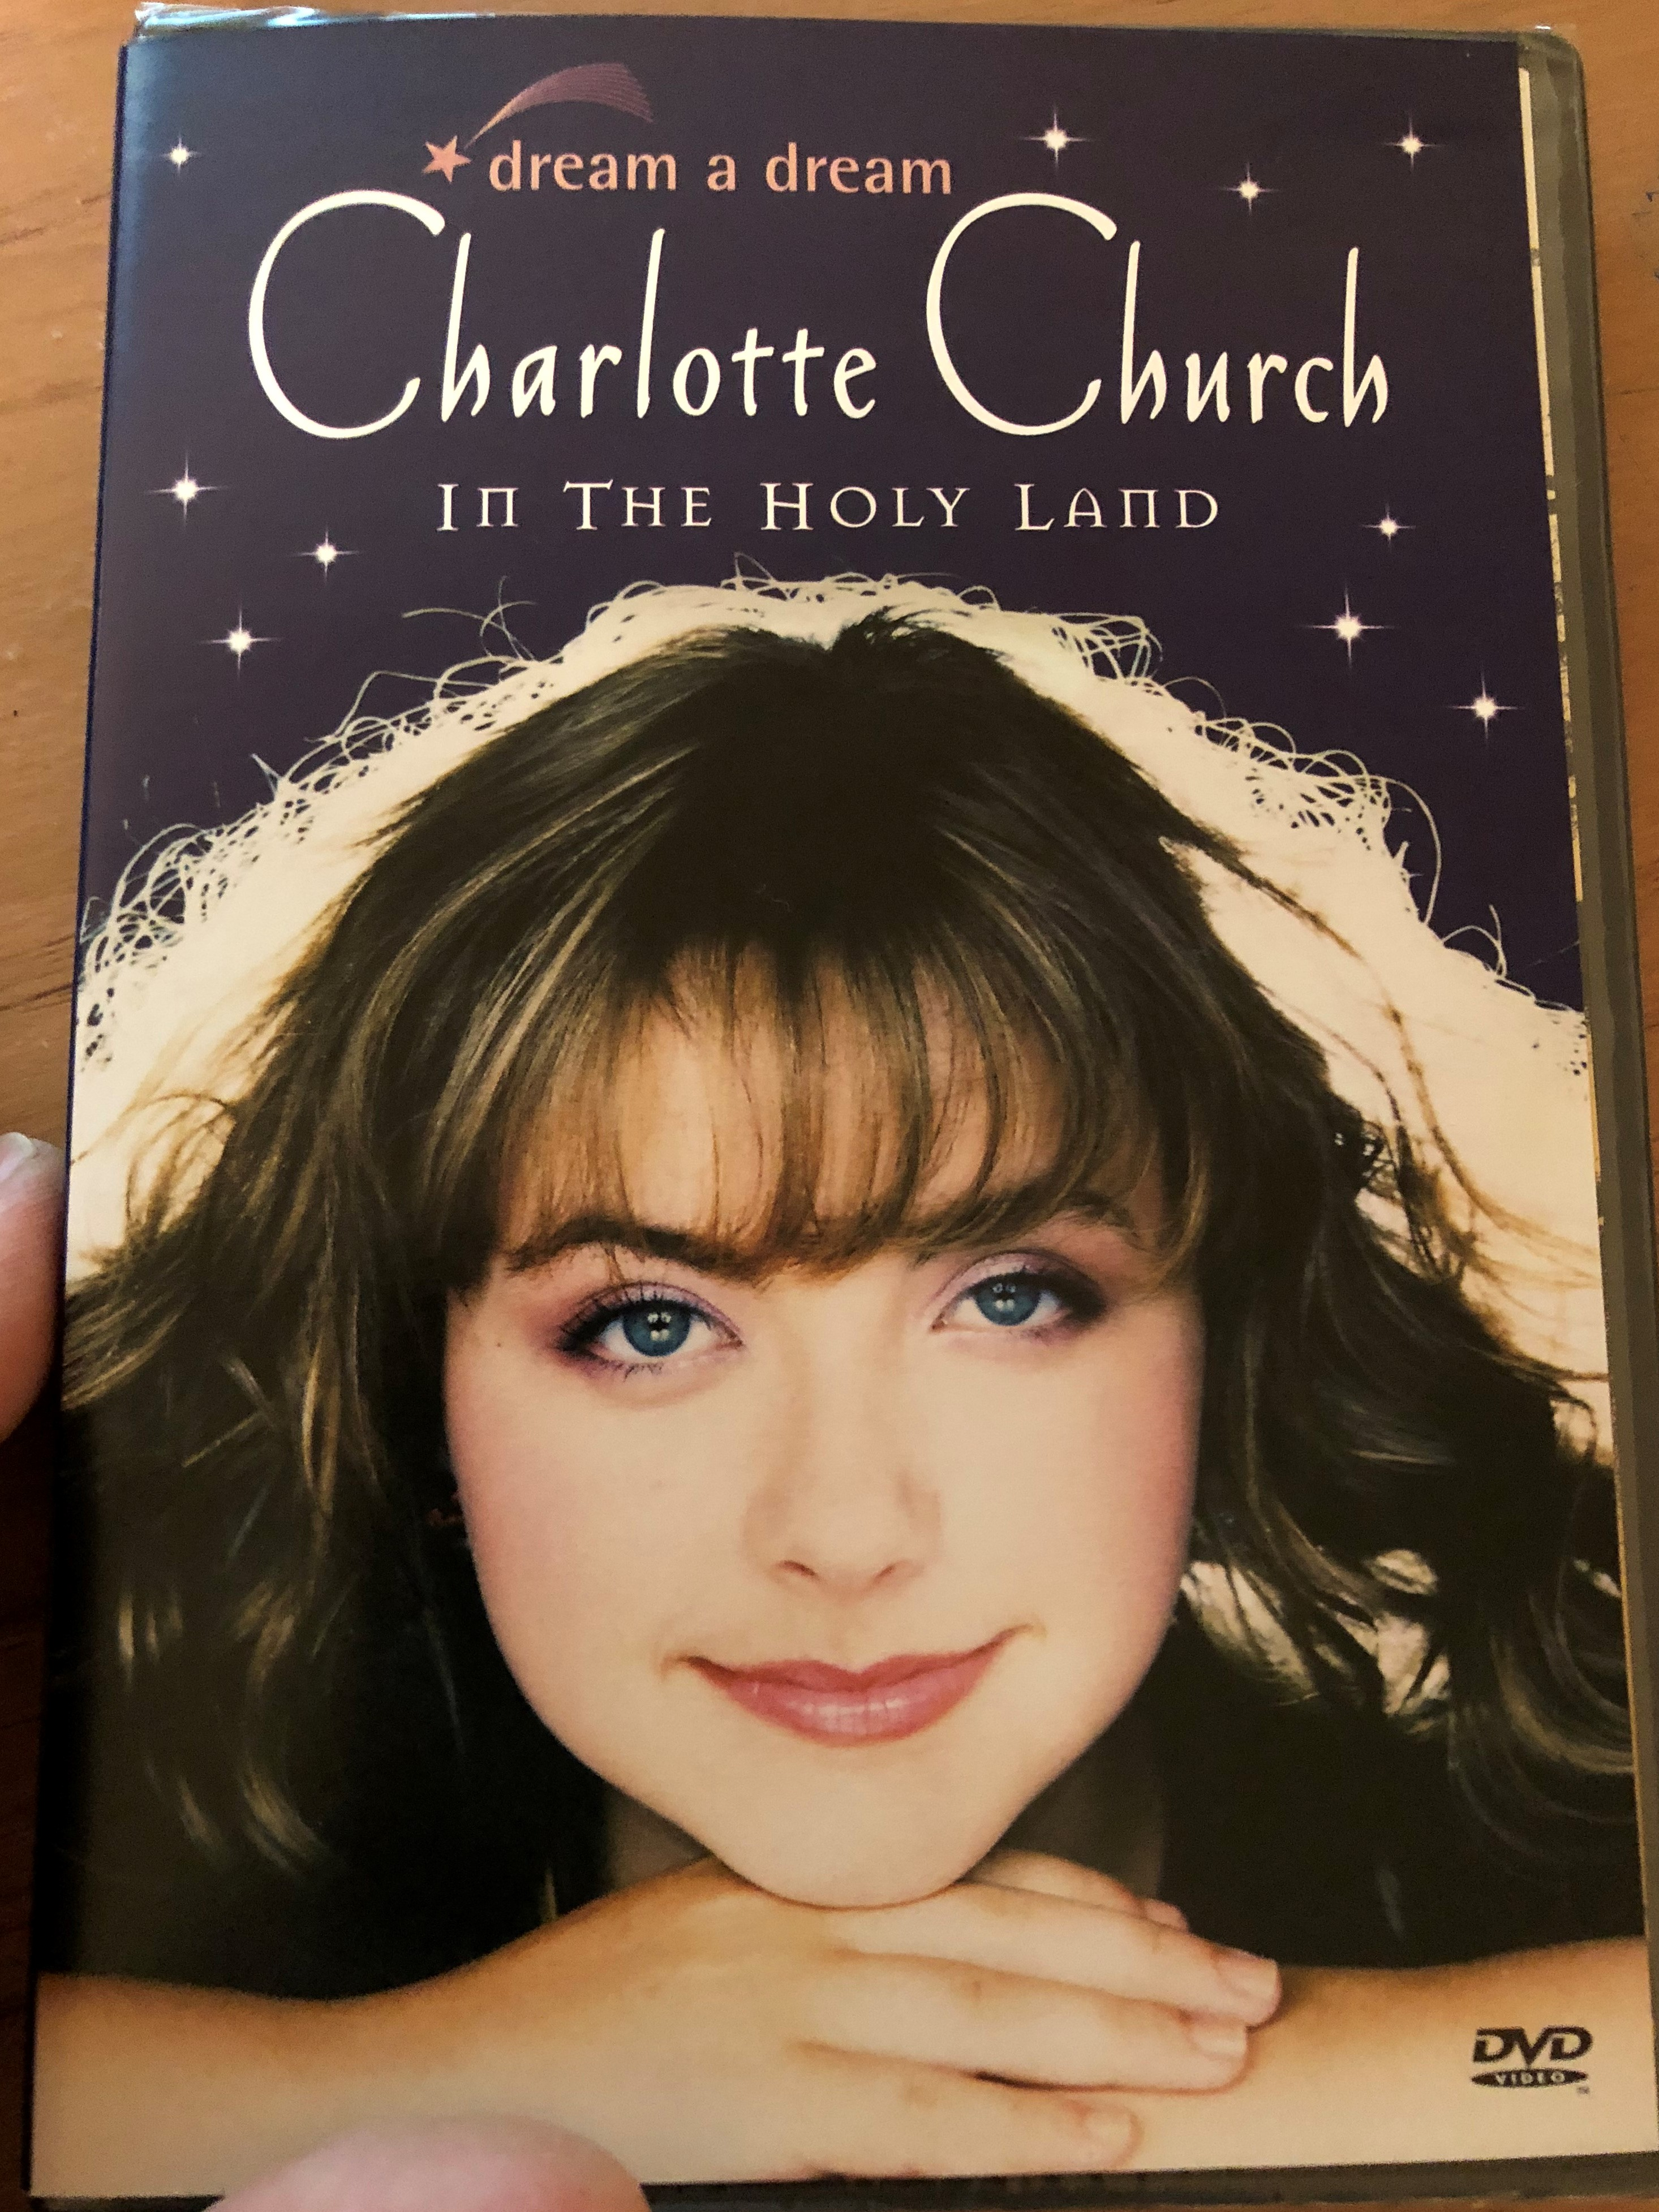 dream-a-dream-dvd-2000-charlotte-church-in-the-holy-land-christmas-songs-directed-by-kriss-russman.jpg